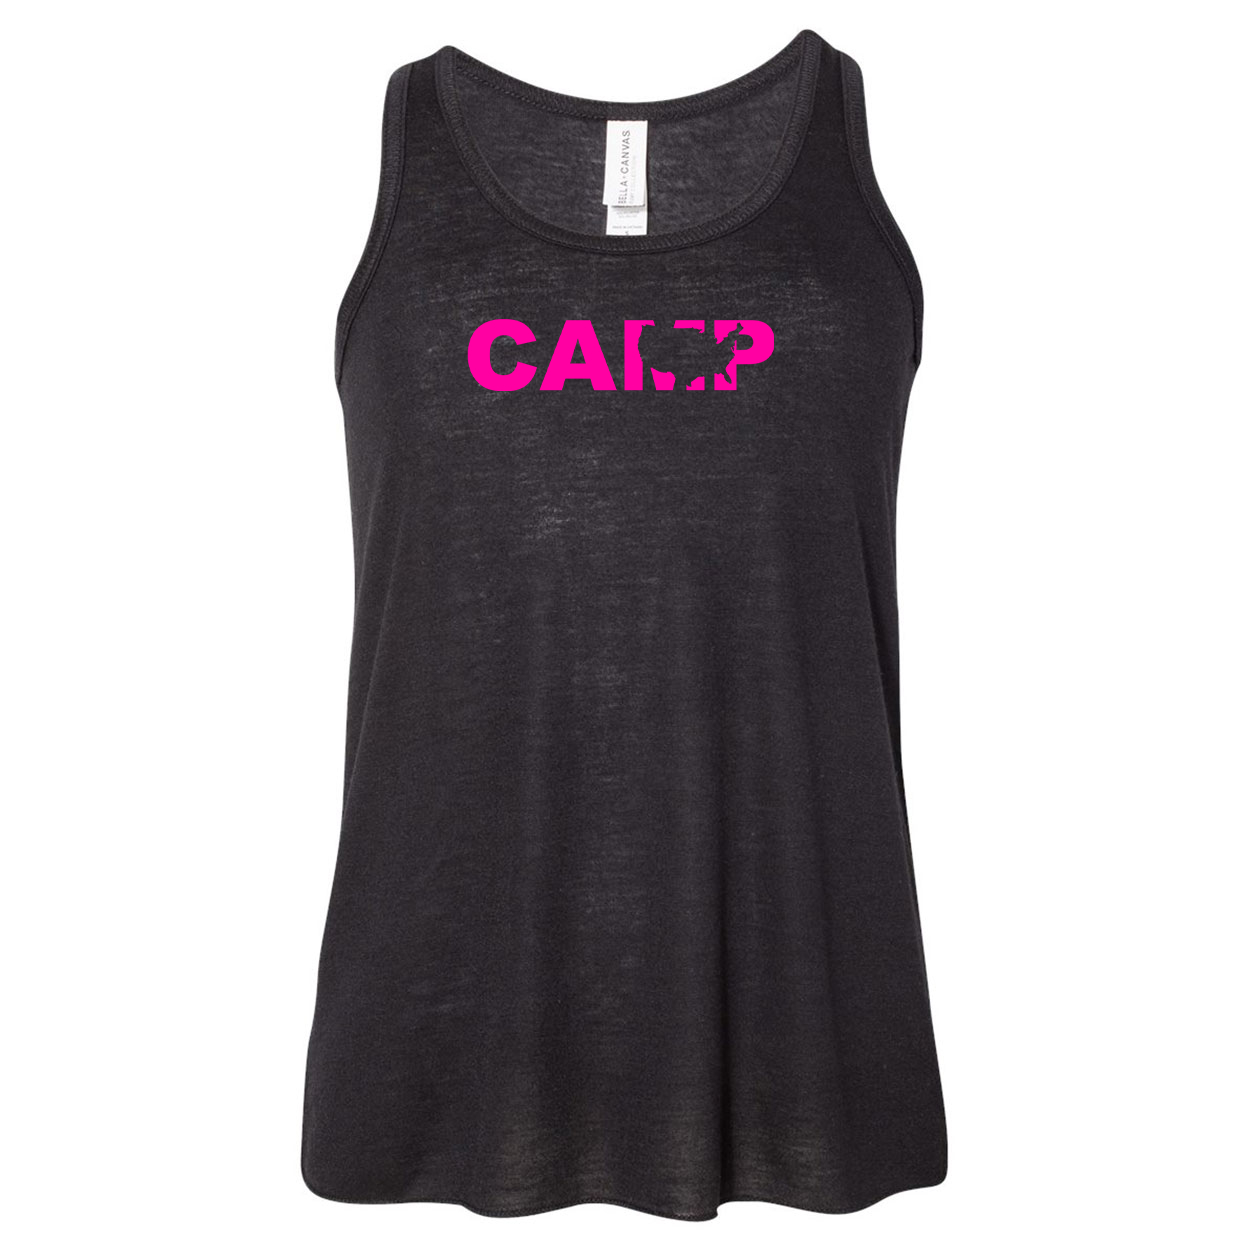 Camp United States Classic Youth Girls Flowy Racerback Tank Top Black (Pink Logo)